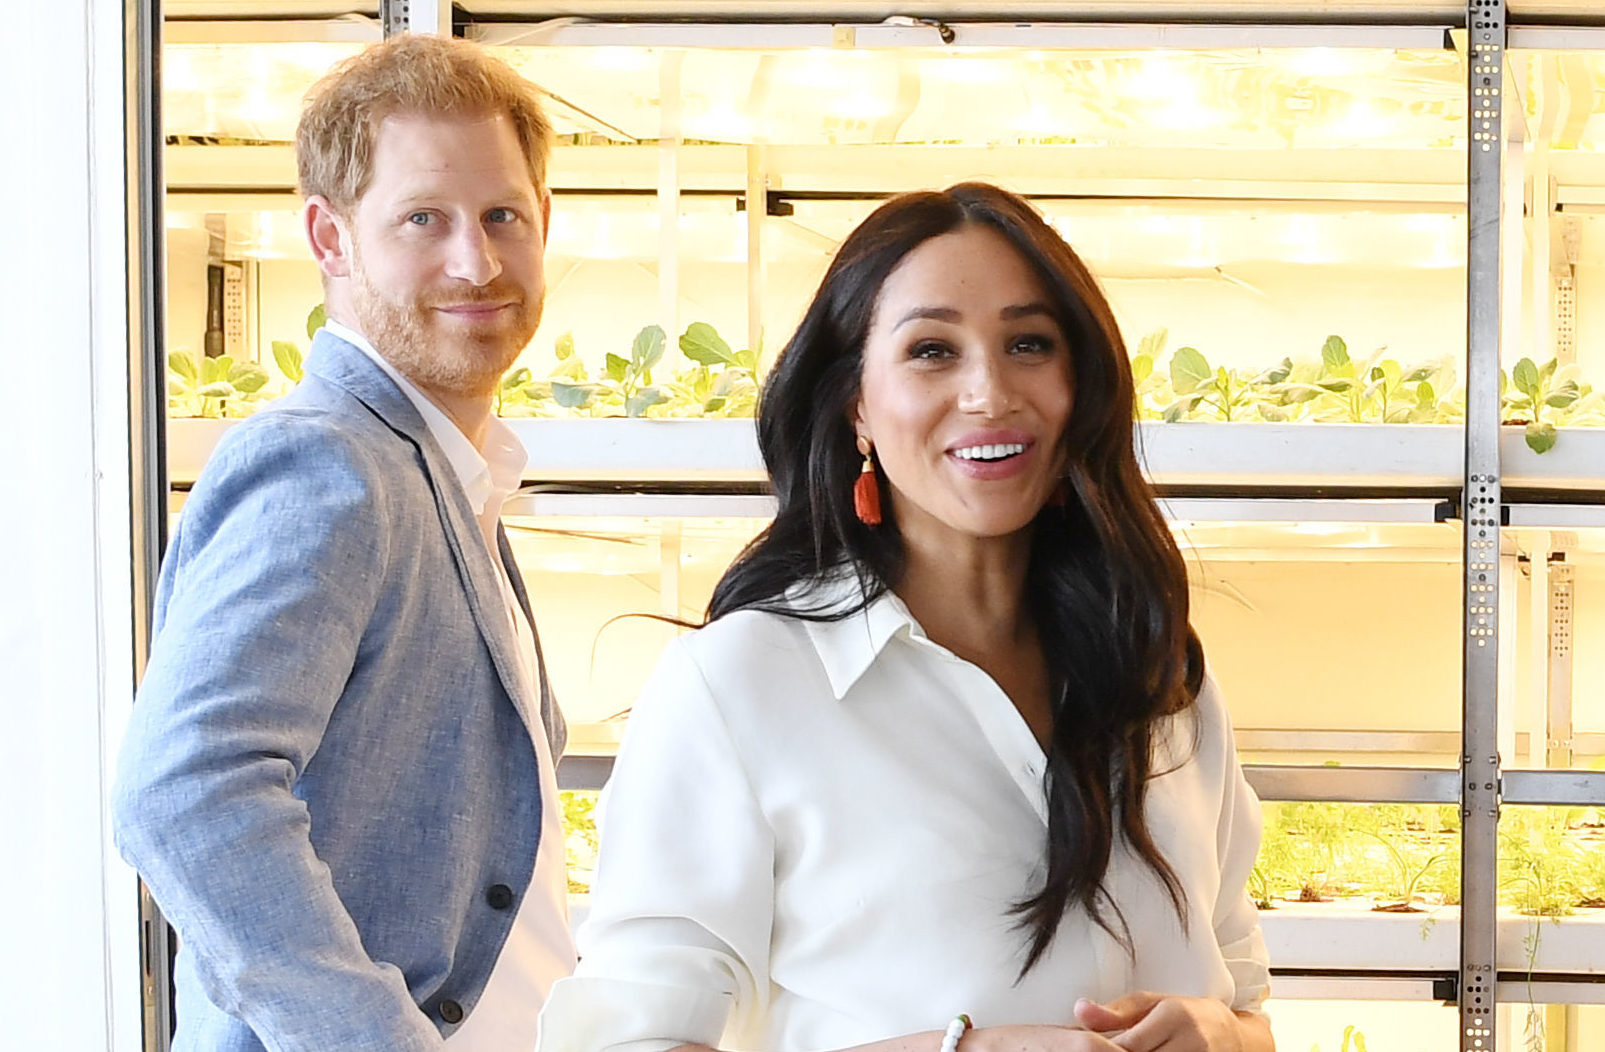 Harry and Meghan on tour in South Africa last year